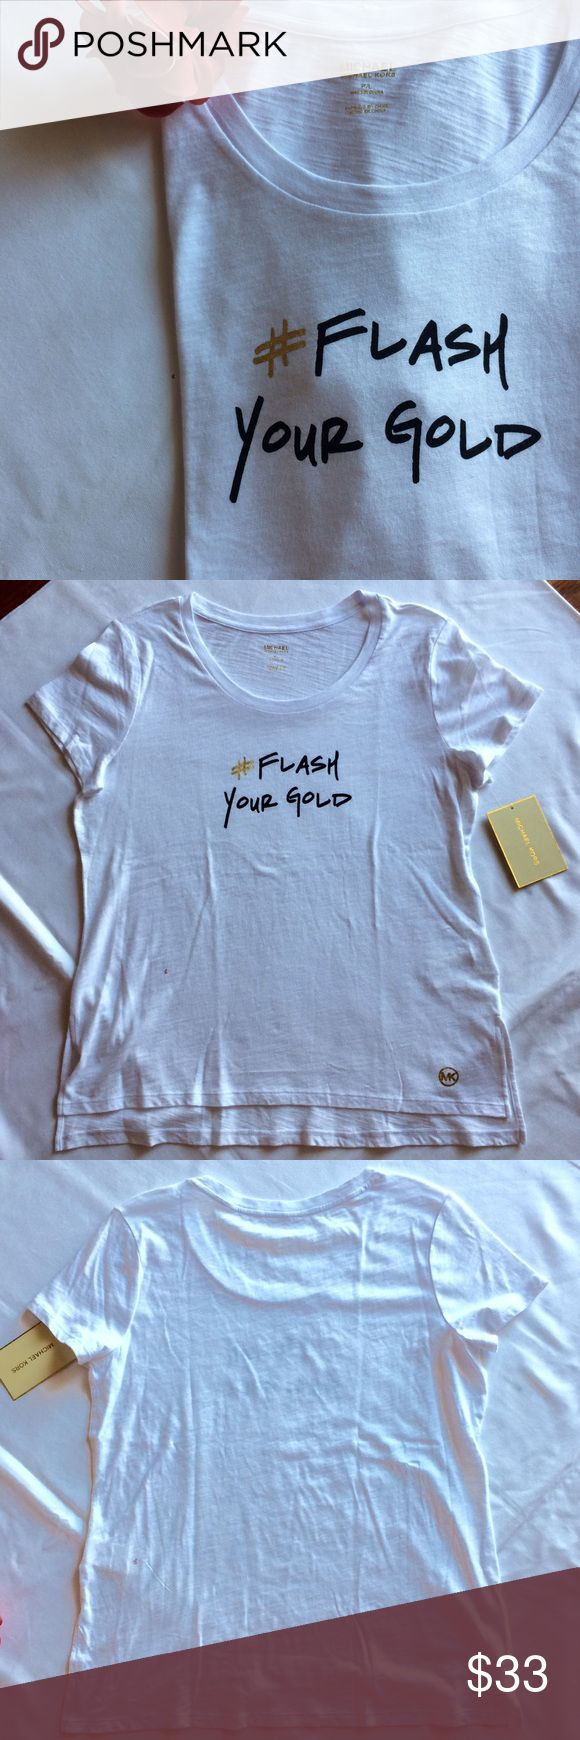 """Michael Kors Graphic T-shirt MICHAEL Michael Kors white """"# Flash Your Gold""""tee with gold and white graphics.  Scoop neckline, pullover tee, slits at side, hems, sits at hip, 100% cotton.  Shoulder to hem 24.5""""/26"""".                                                   🚫Trades.                                                             🚫trades. MICHAEL Michael Kors Tops Tees - Short Sleeve"""